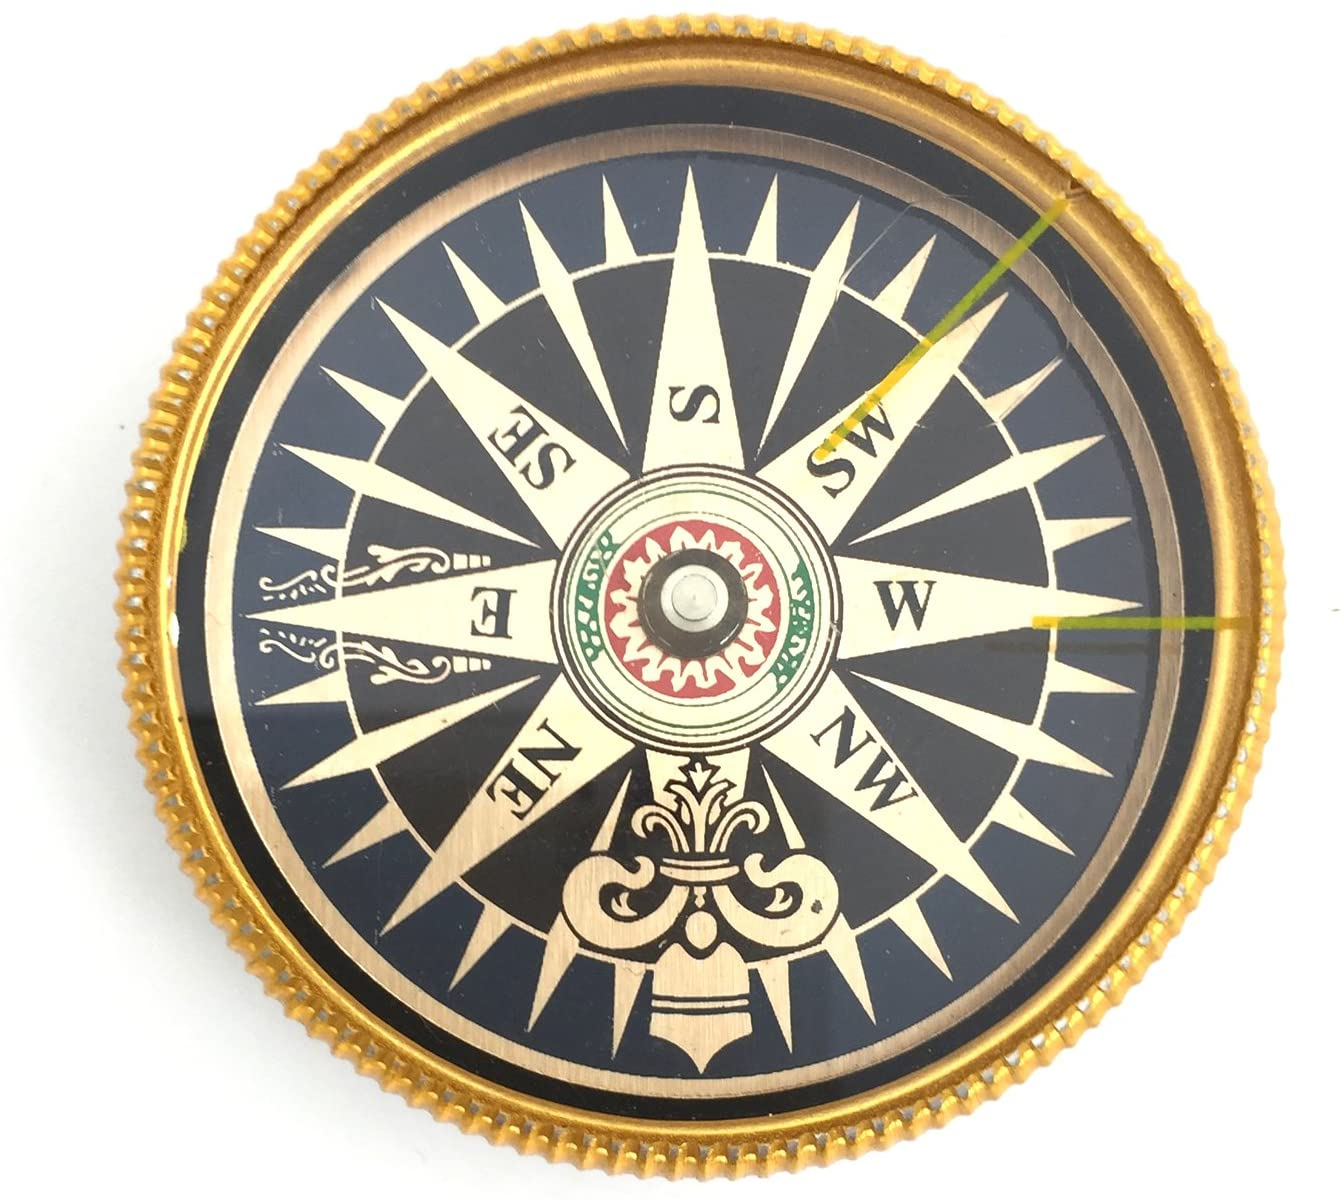 PANOVOS Antique Military Magnetic Compass Tools